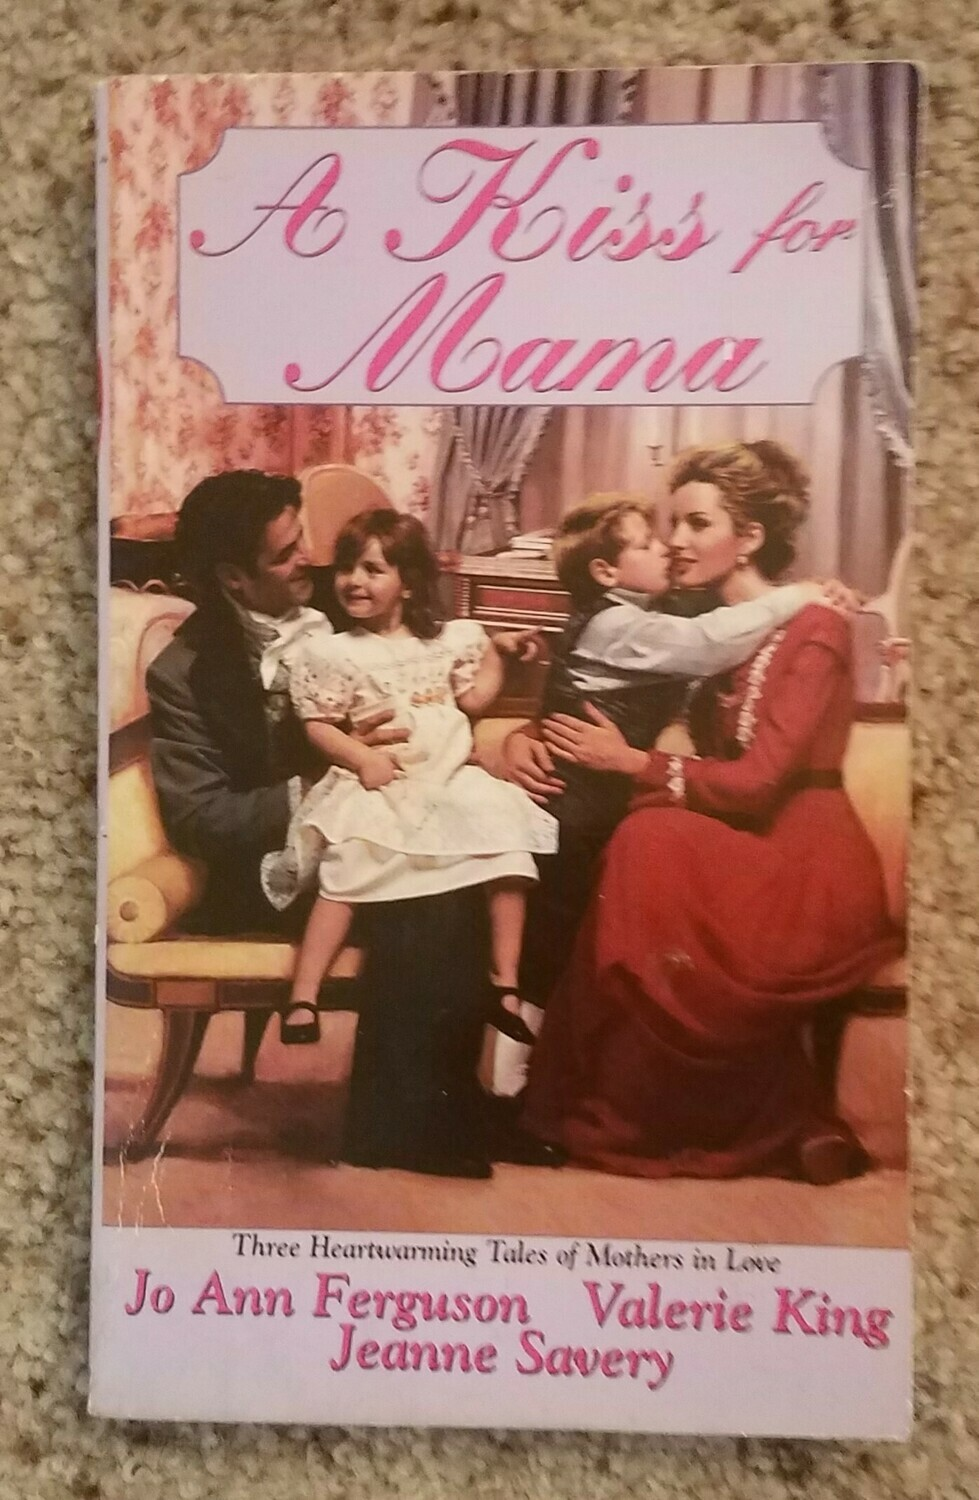 A Kiss for Mama by Jo Ann Ferguson, Valerie King, and Jeanne Savery